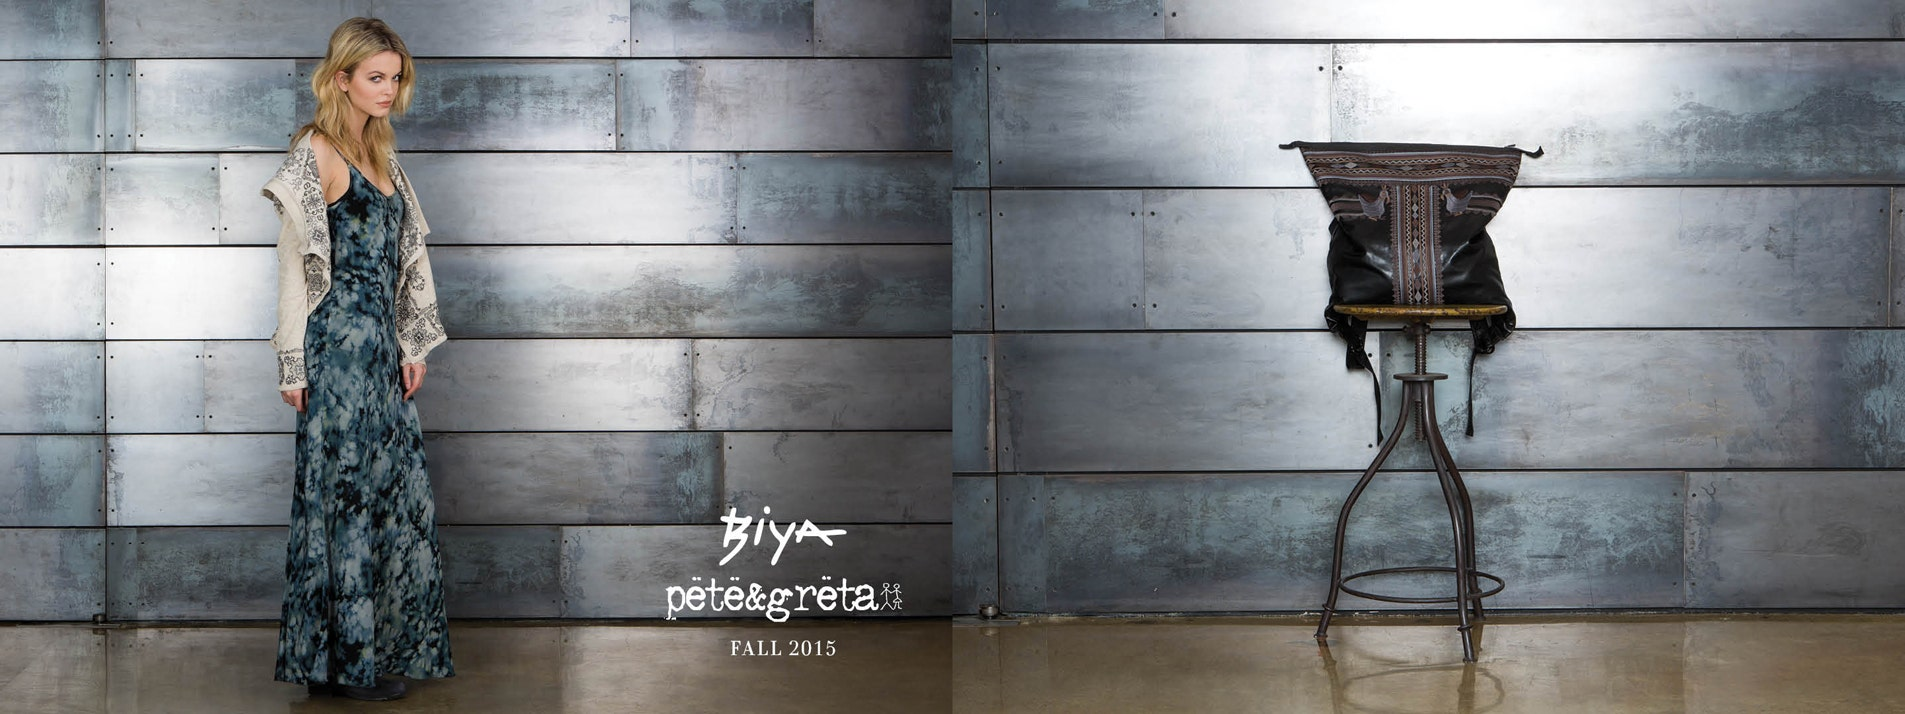 Biya Pete and Greta Fall 2015 Lookbook